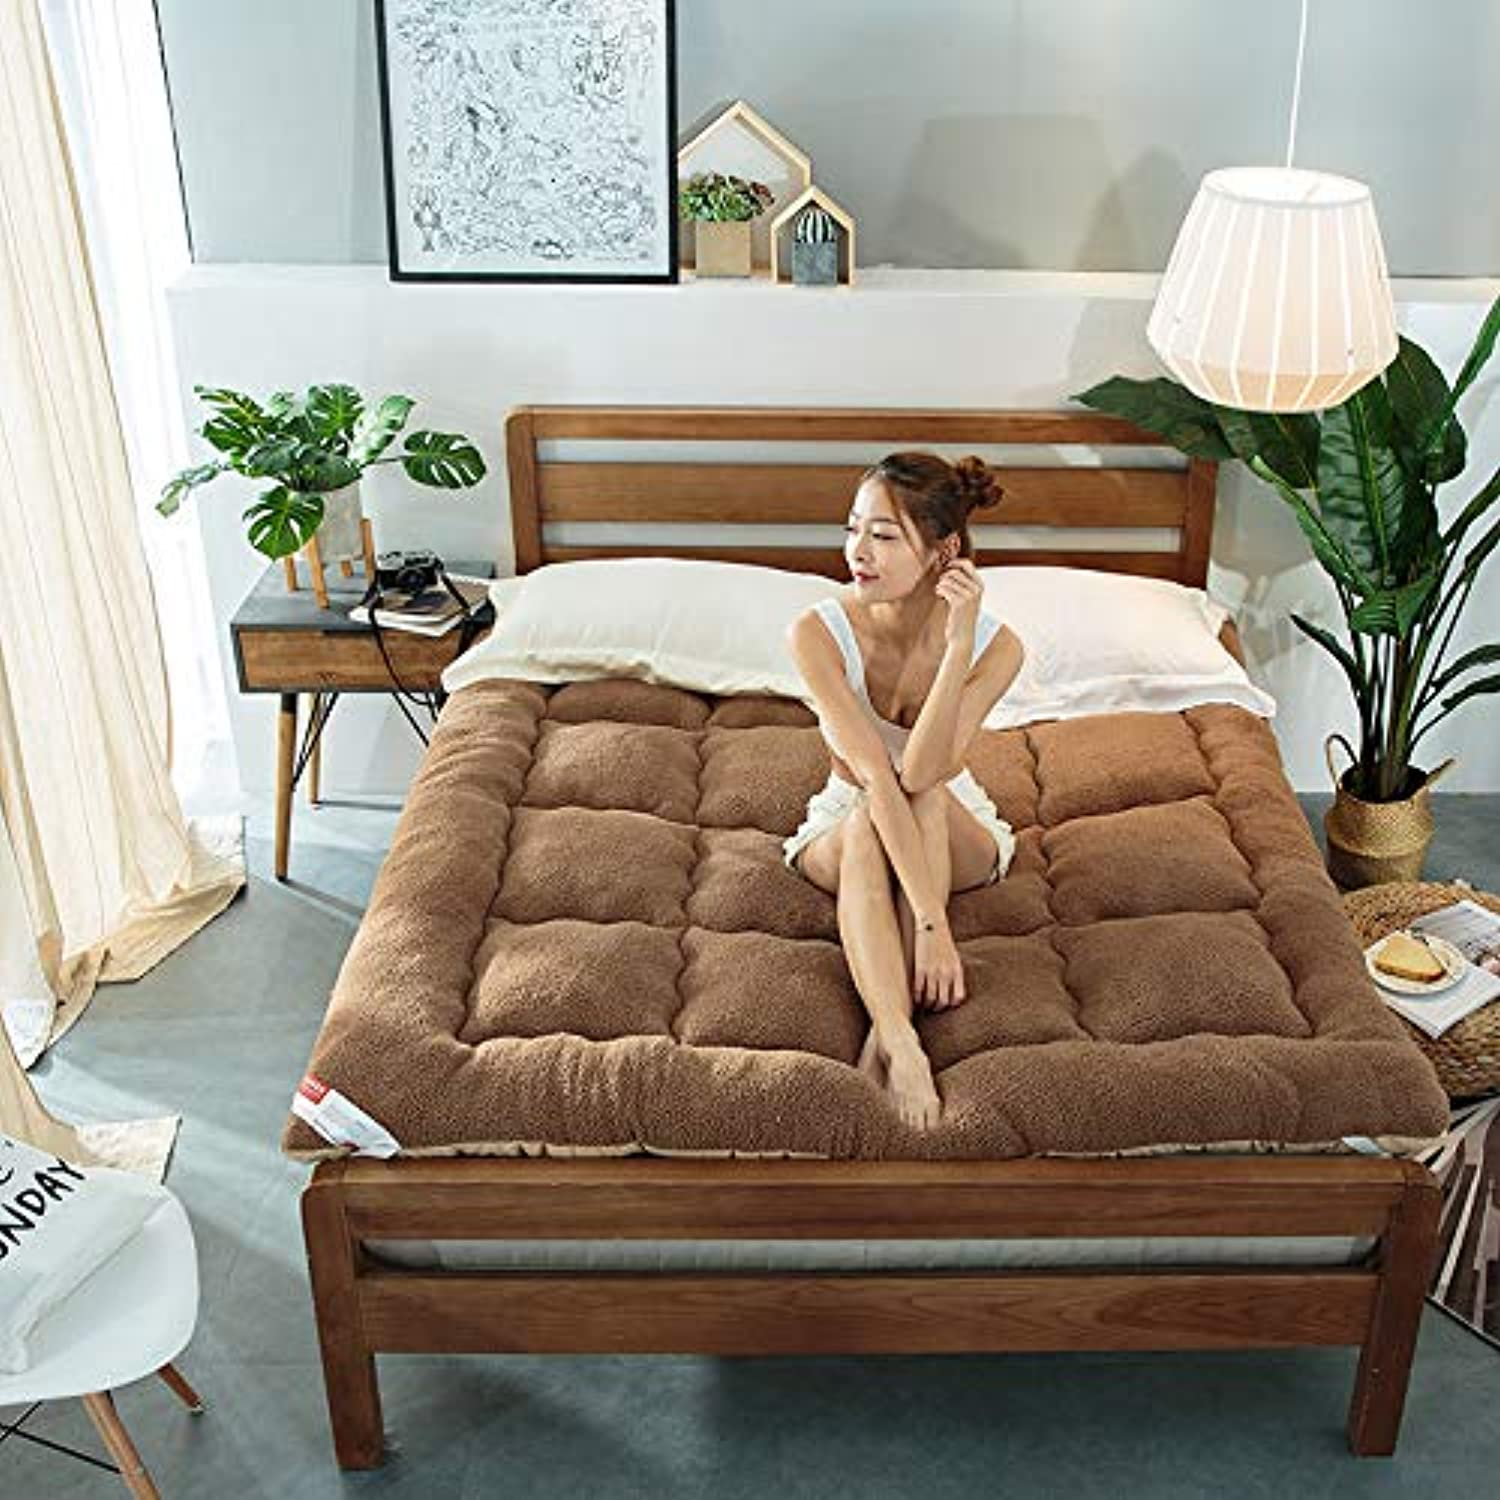 Winter Warm Thick Thermostat Mattress Lambs Mattress,Single Double Folding Cushion Floor mat Elasticated Corner Straps-C 90x200cm(35x79inch)